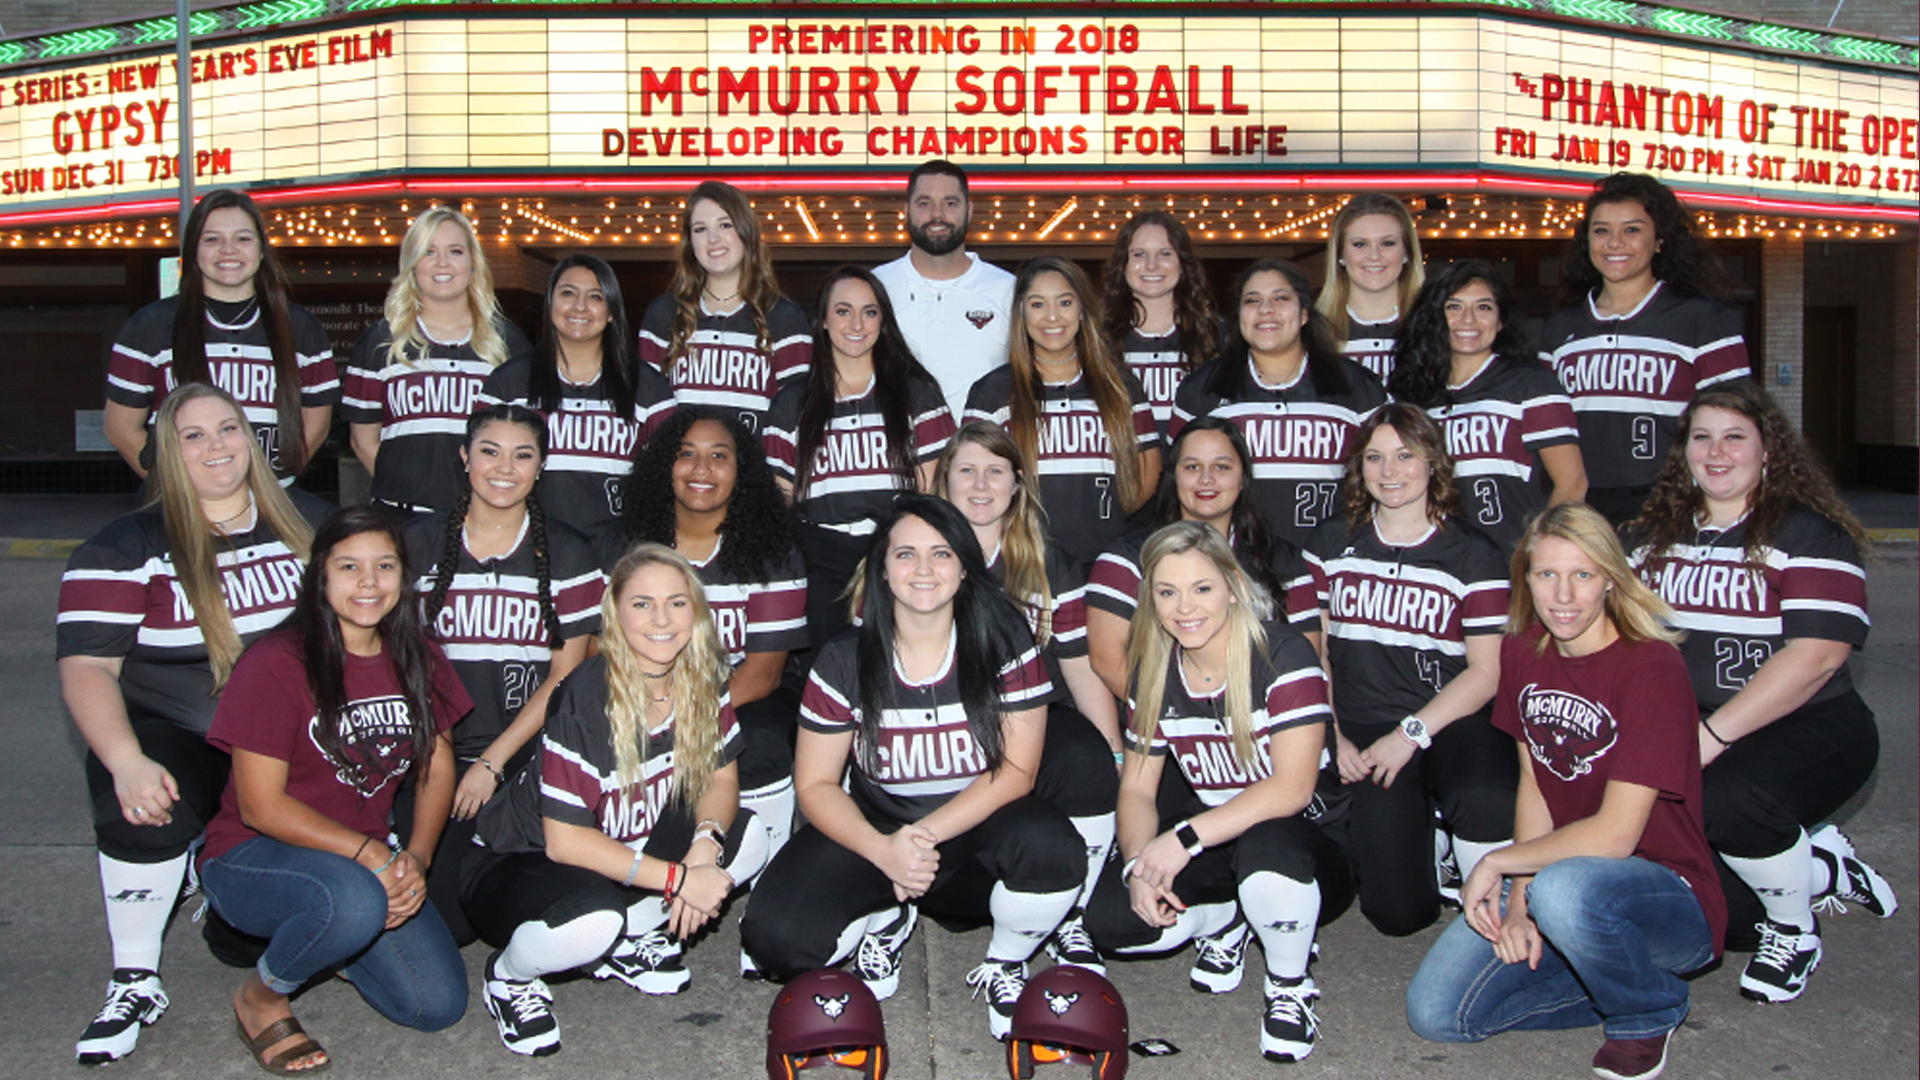 mcmurry  INTRODUCING: McMurry University's First-Ever Softball Team Roster ...